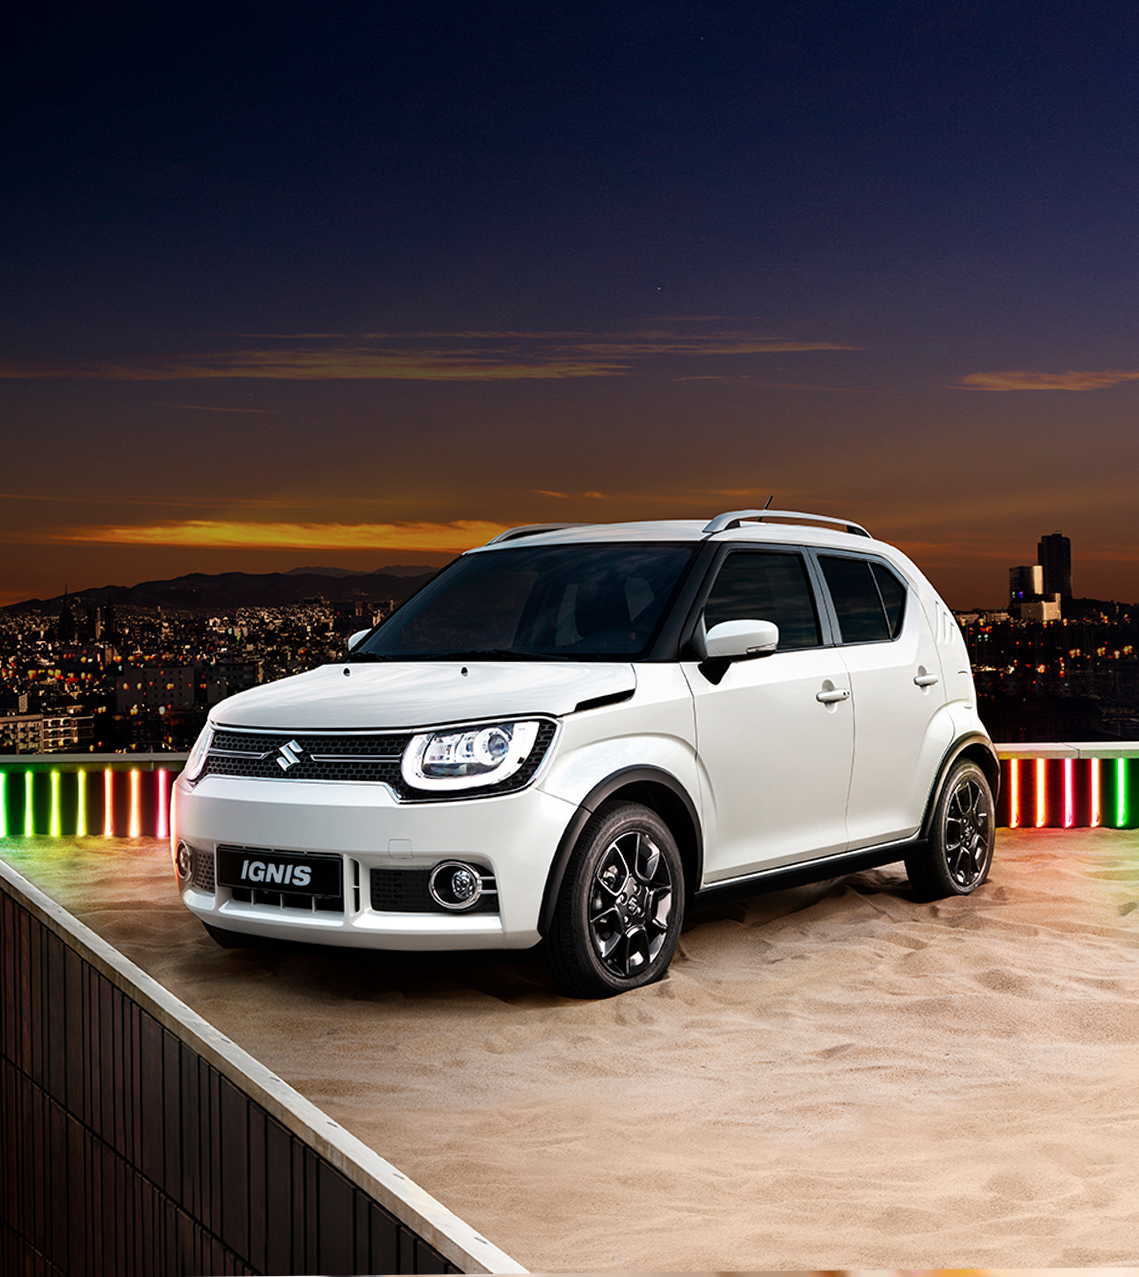 Suzuki Ignis resting on a sandy roof at evening